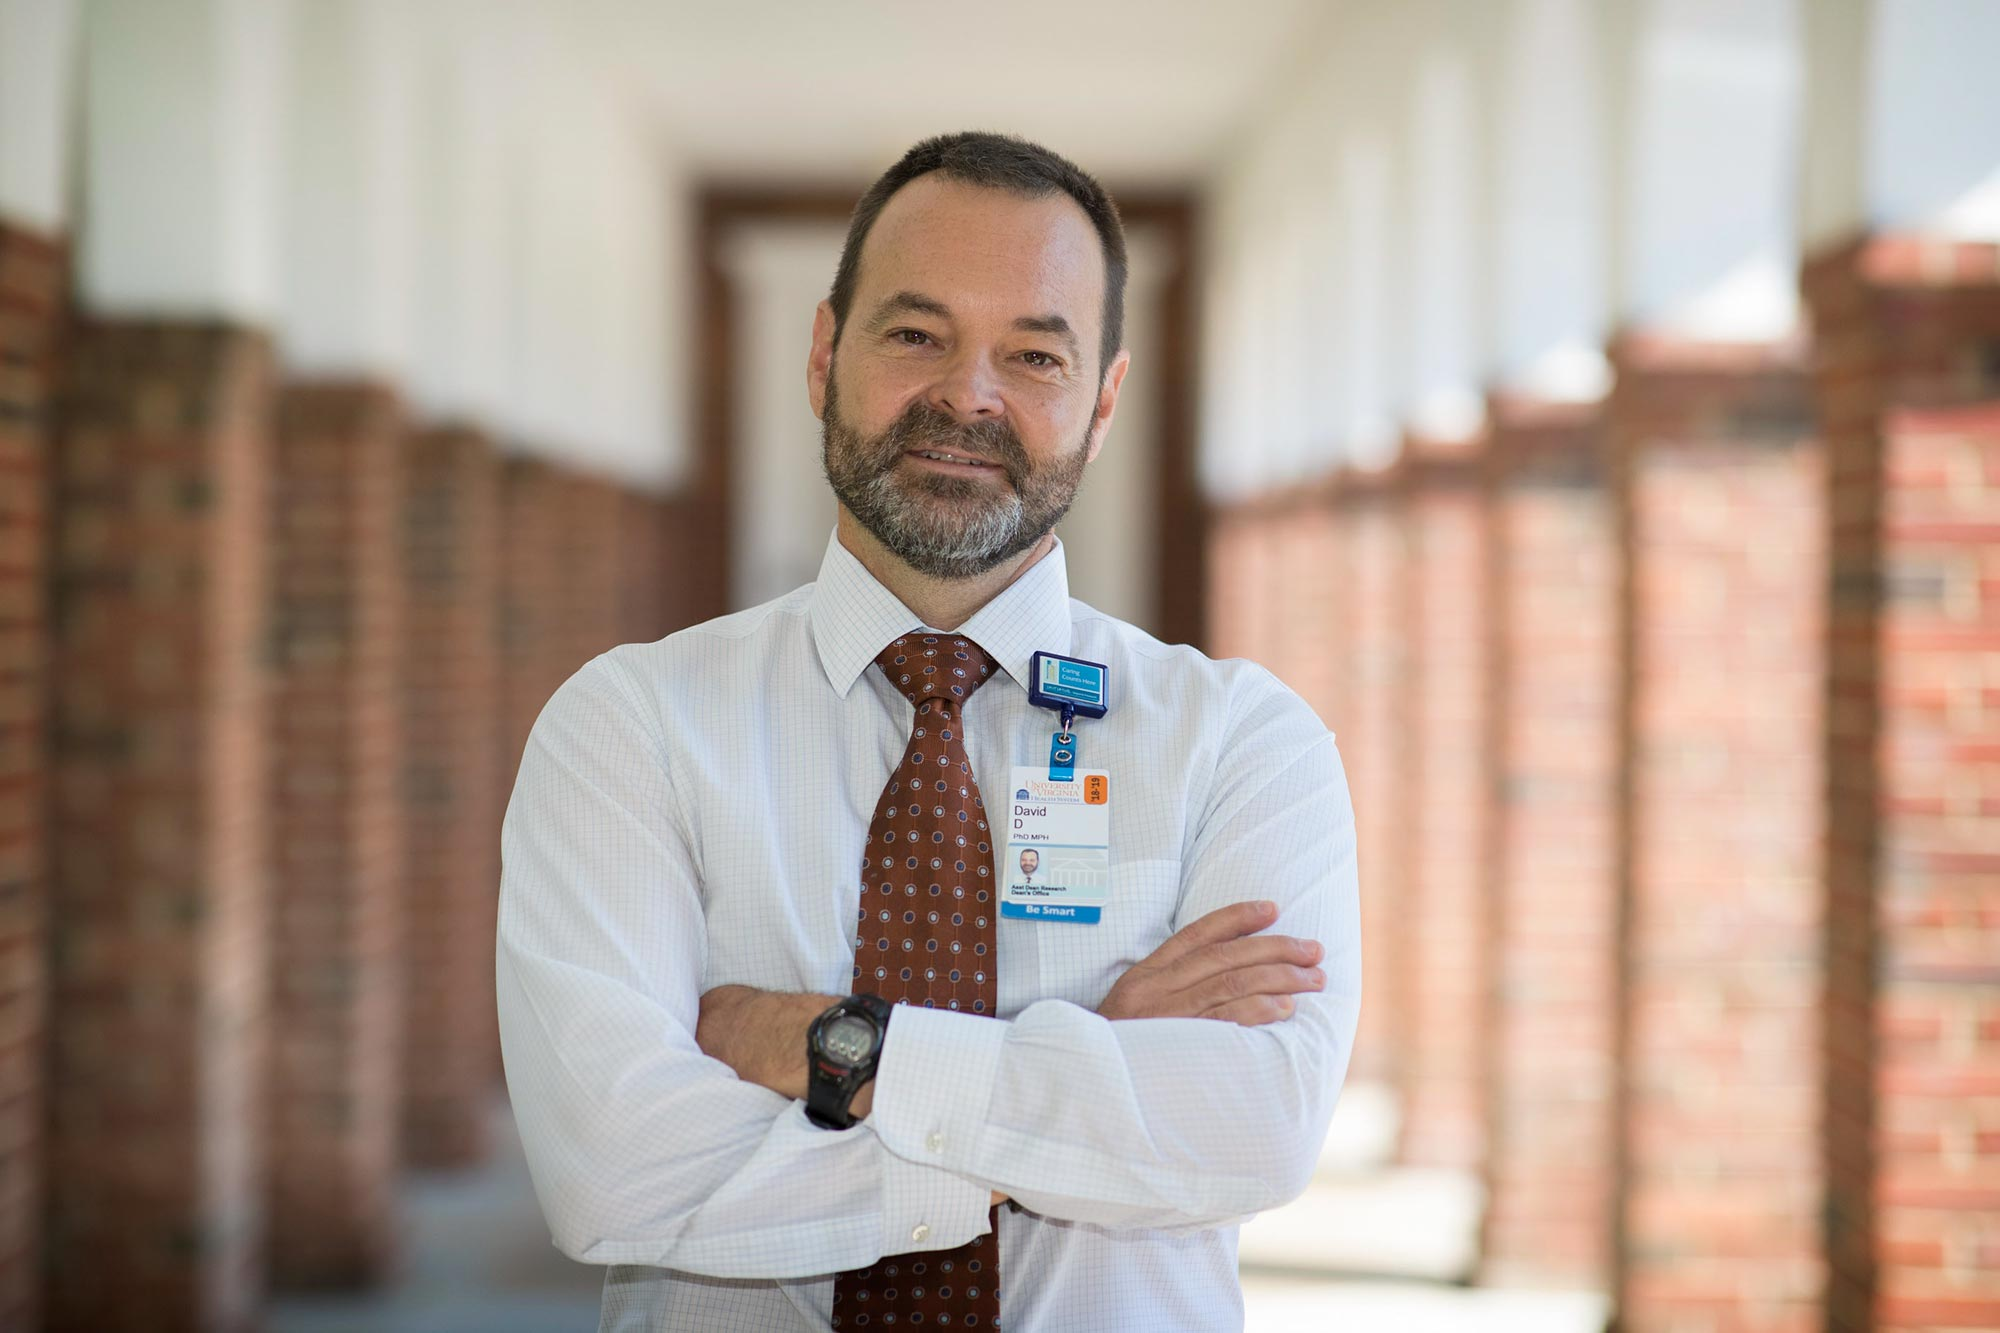 David L. Driscoll, the assistant dean of research and the director of the Office of Research at the UVA School of Medicine, is leading the Virginia Higher Education Opioid Consortium. (Photo by Dan Addison, University Communications)